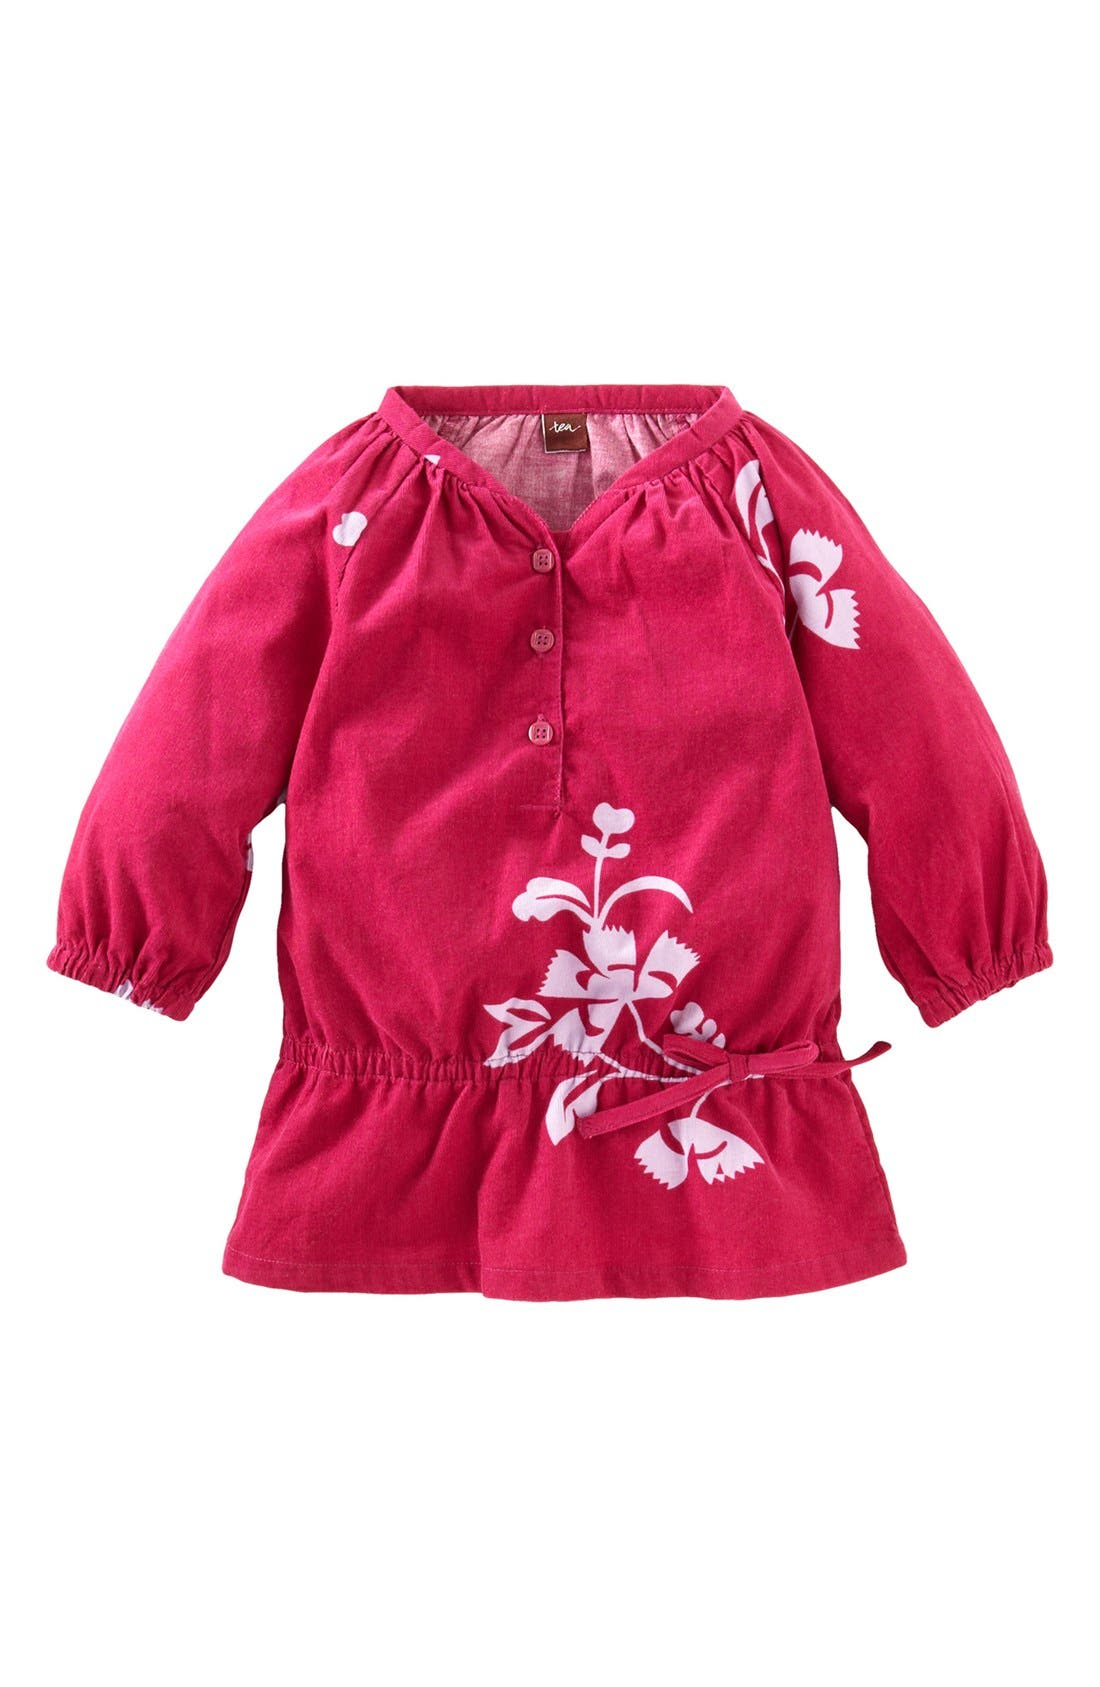 Main Image - Tea Collection 'Floral Cozy' Corduroy Top (Little Girls & Big Girls)